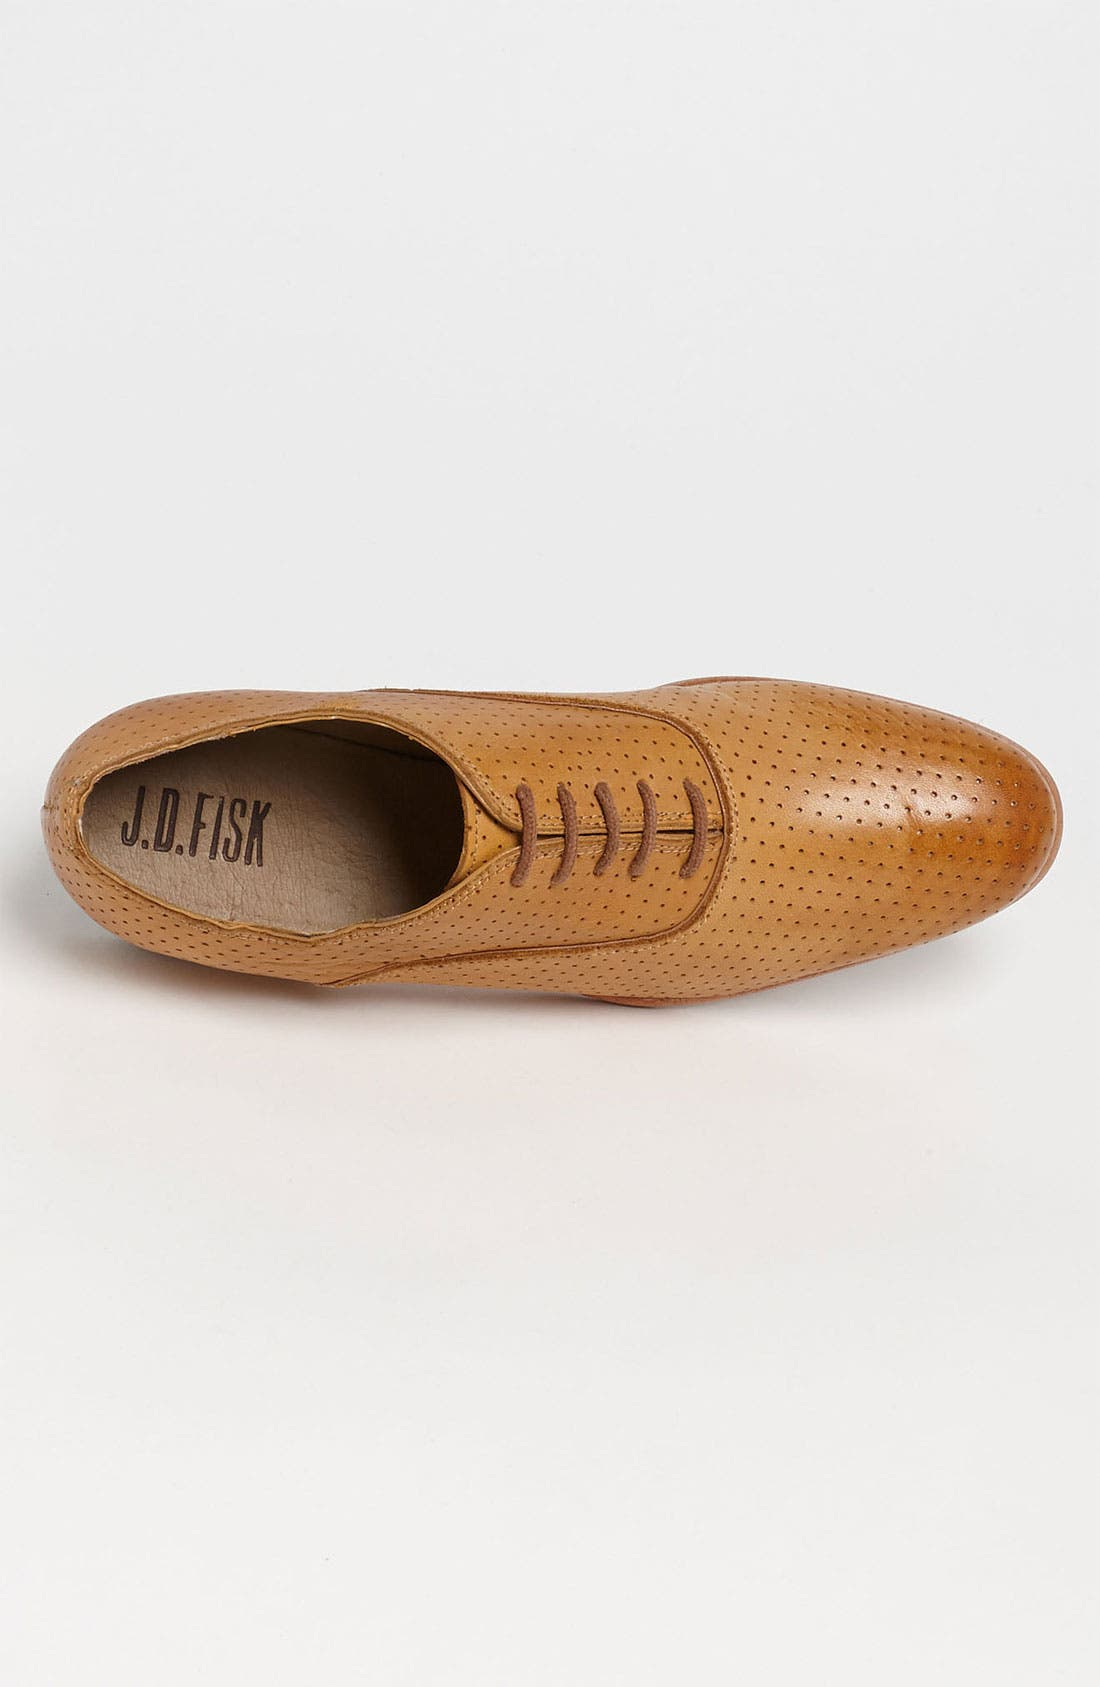 Alternate Image 3  - J.D. Fisk 'Moore' Perforated Oxford